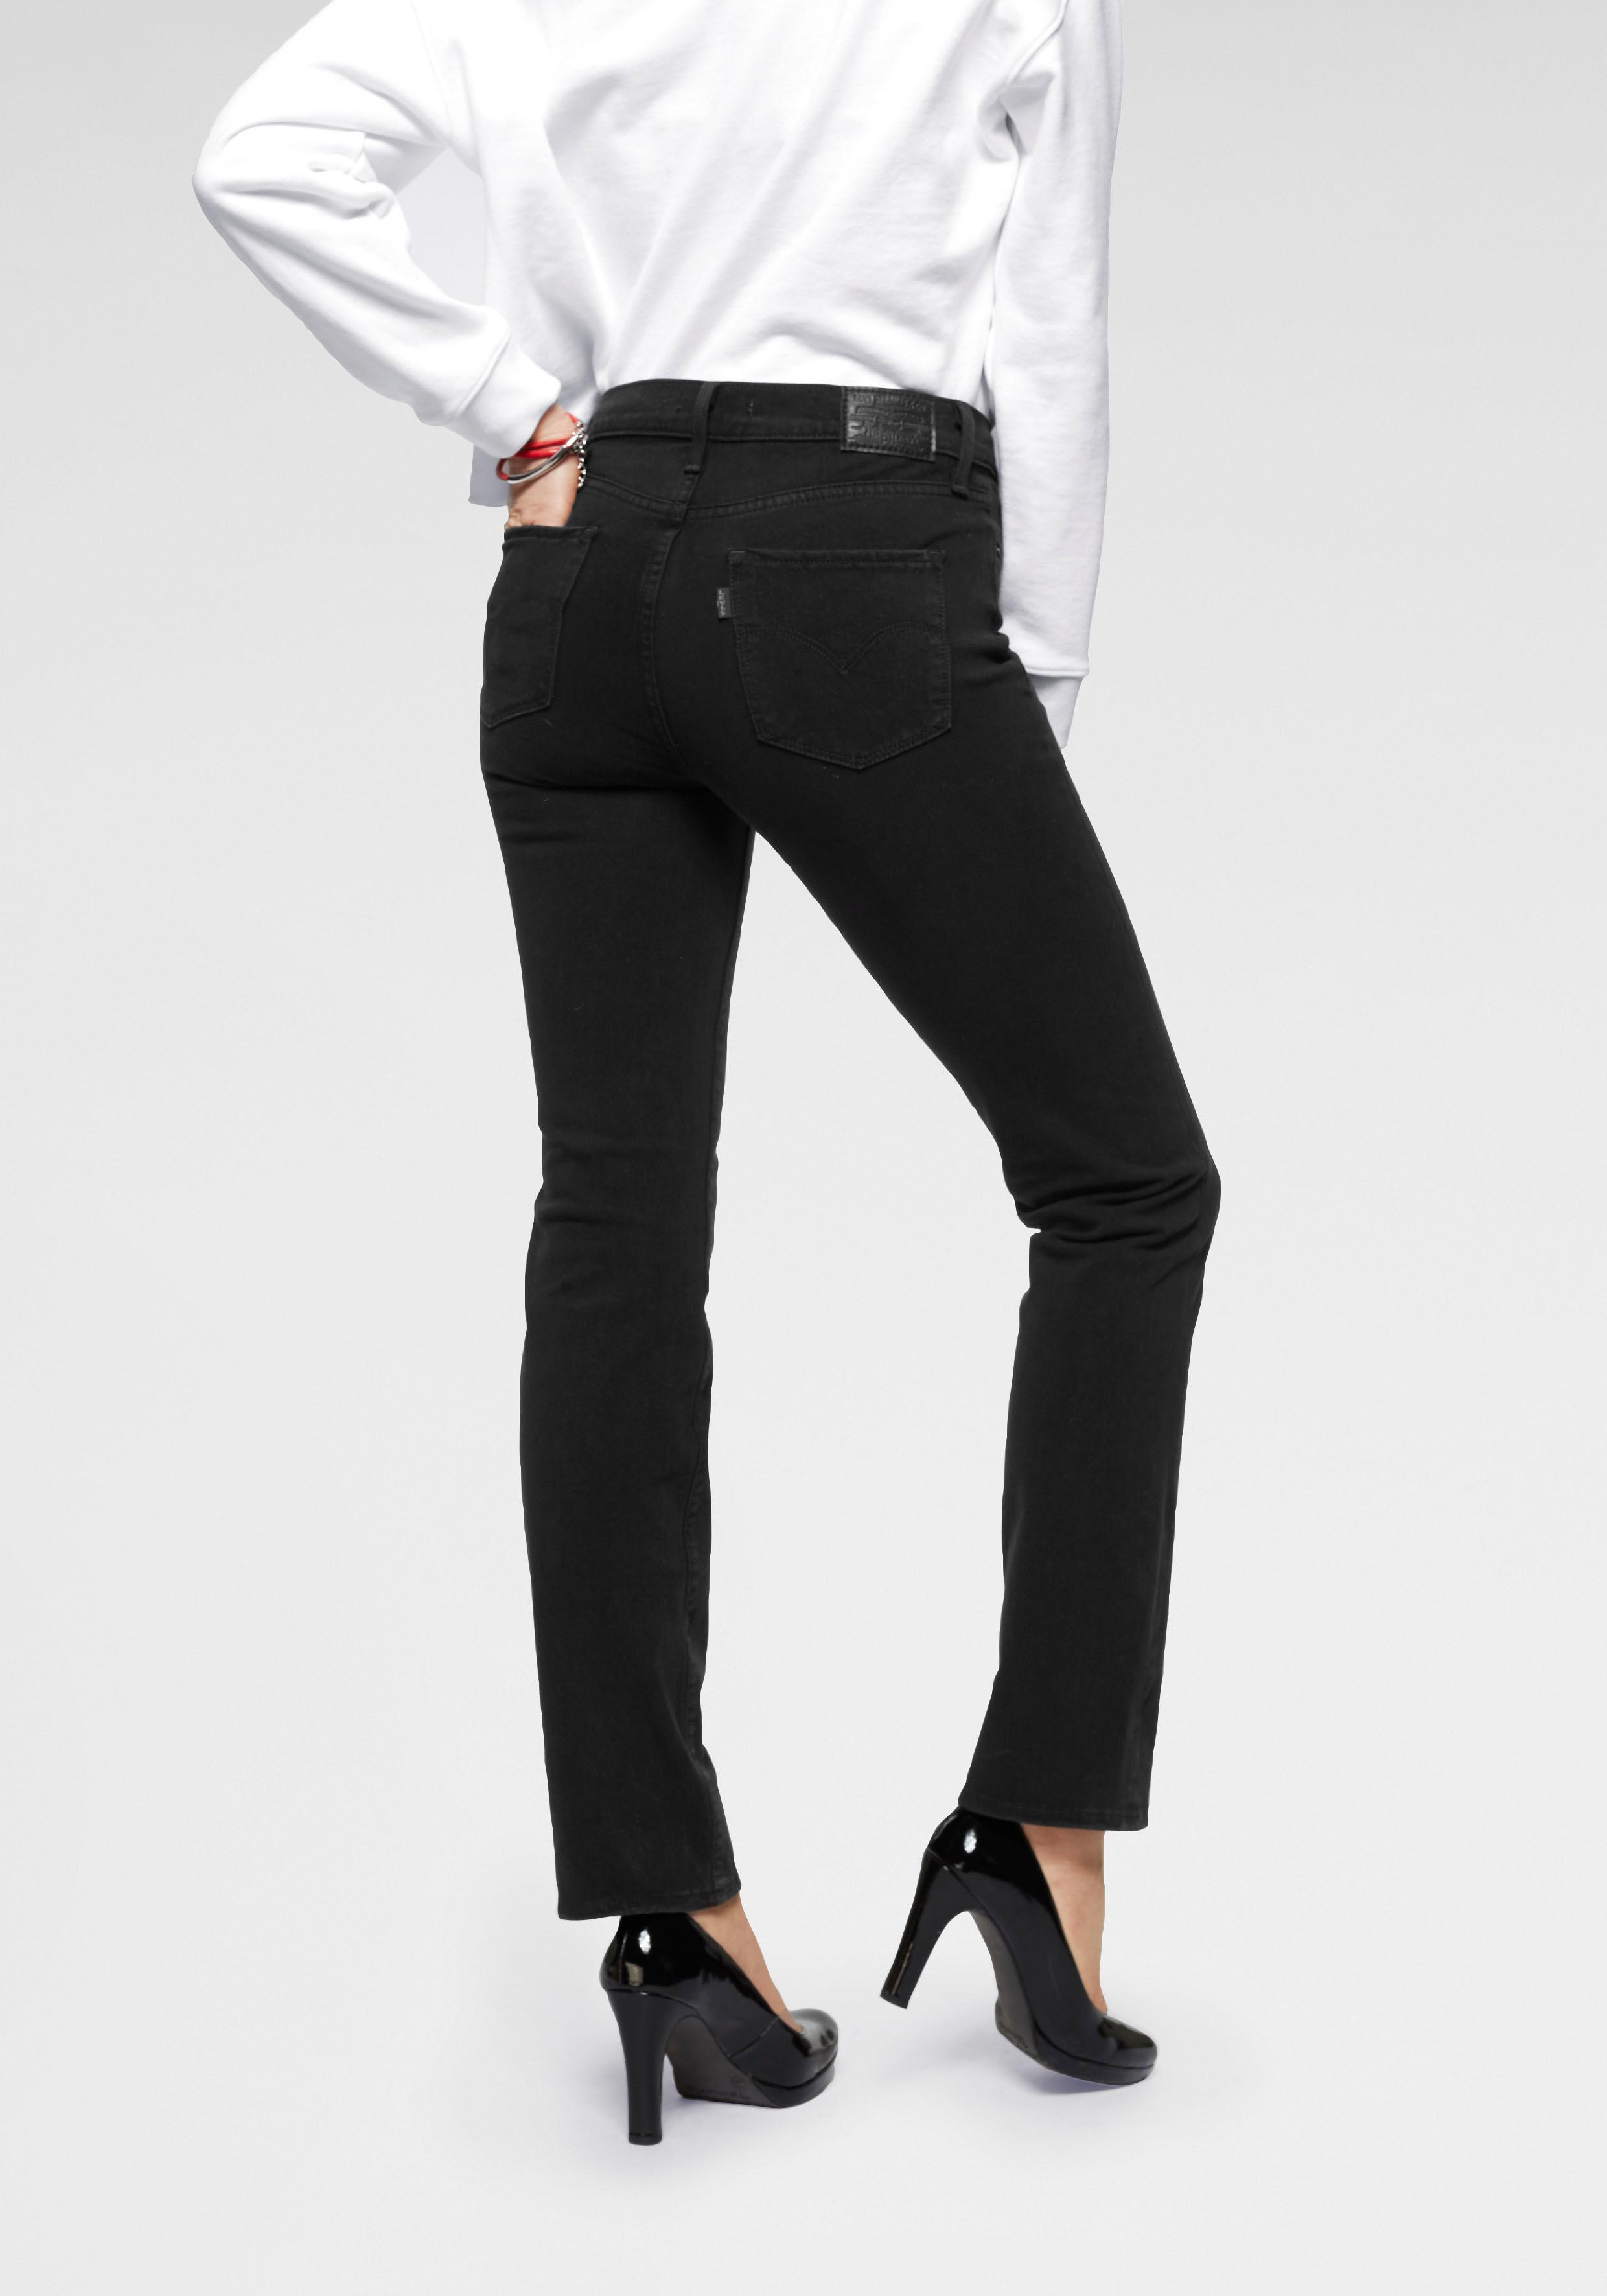 Levi's Gerade Jeans 314 Shaping Straight | Bekleidung > Jeans > Gerade Jeans | Schwarz | Levi's